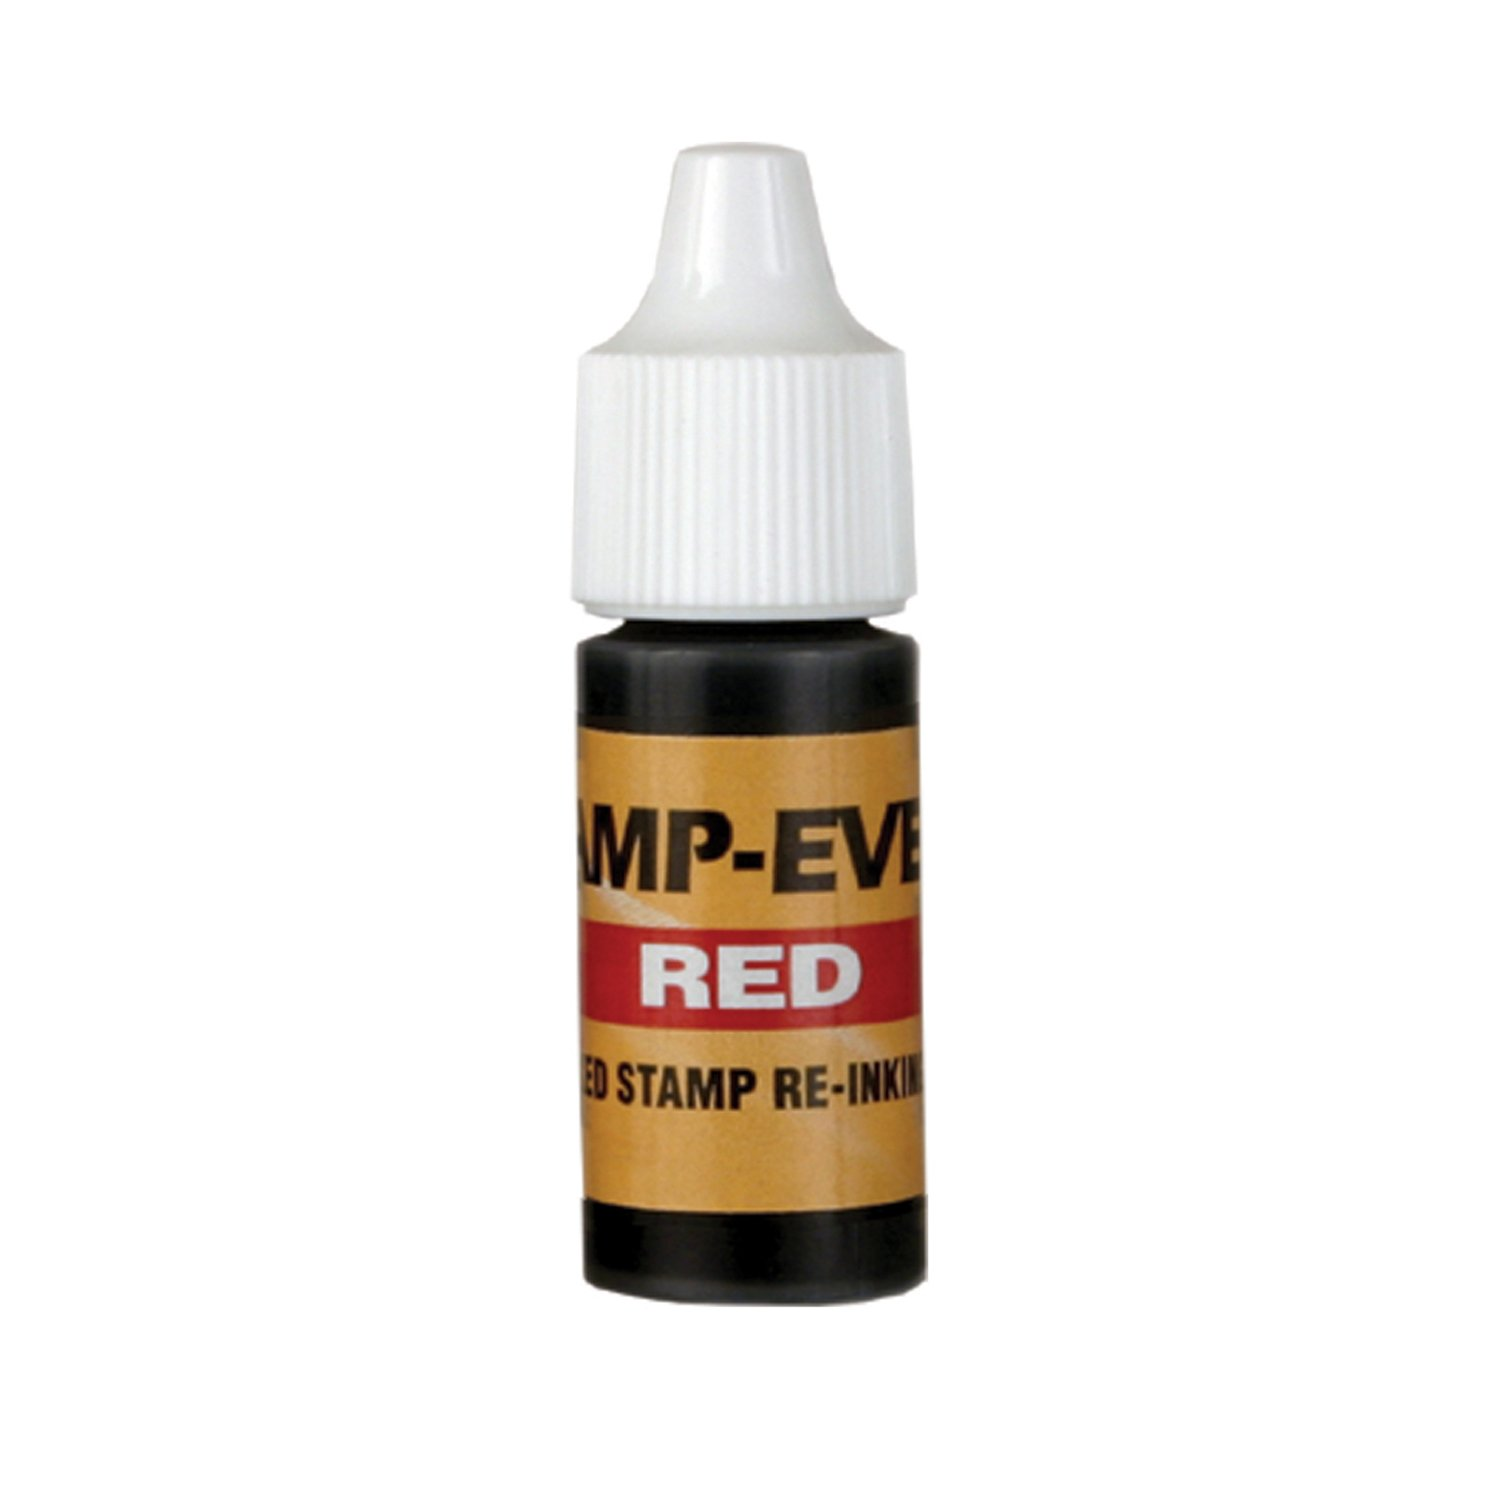 Redi-Tag-Stamp Refill Ink, 7 ml Bottle of, Red-97011